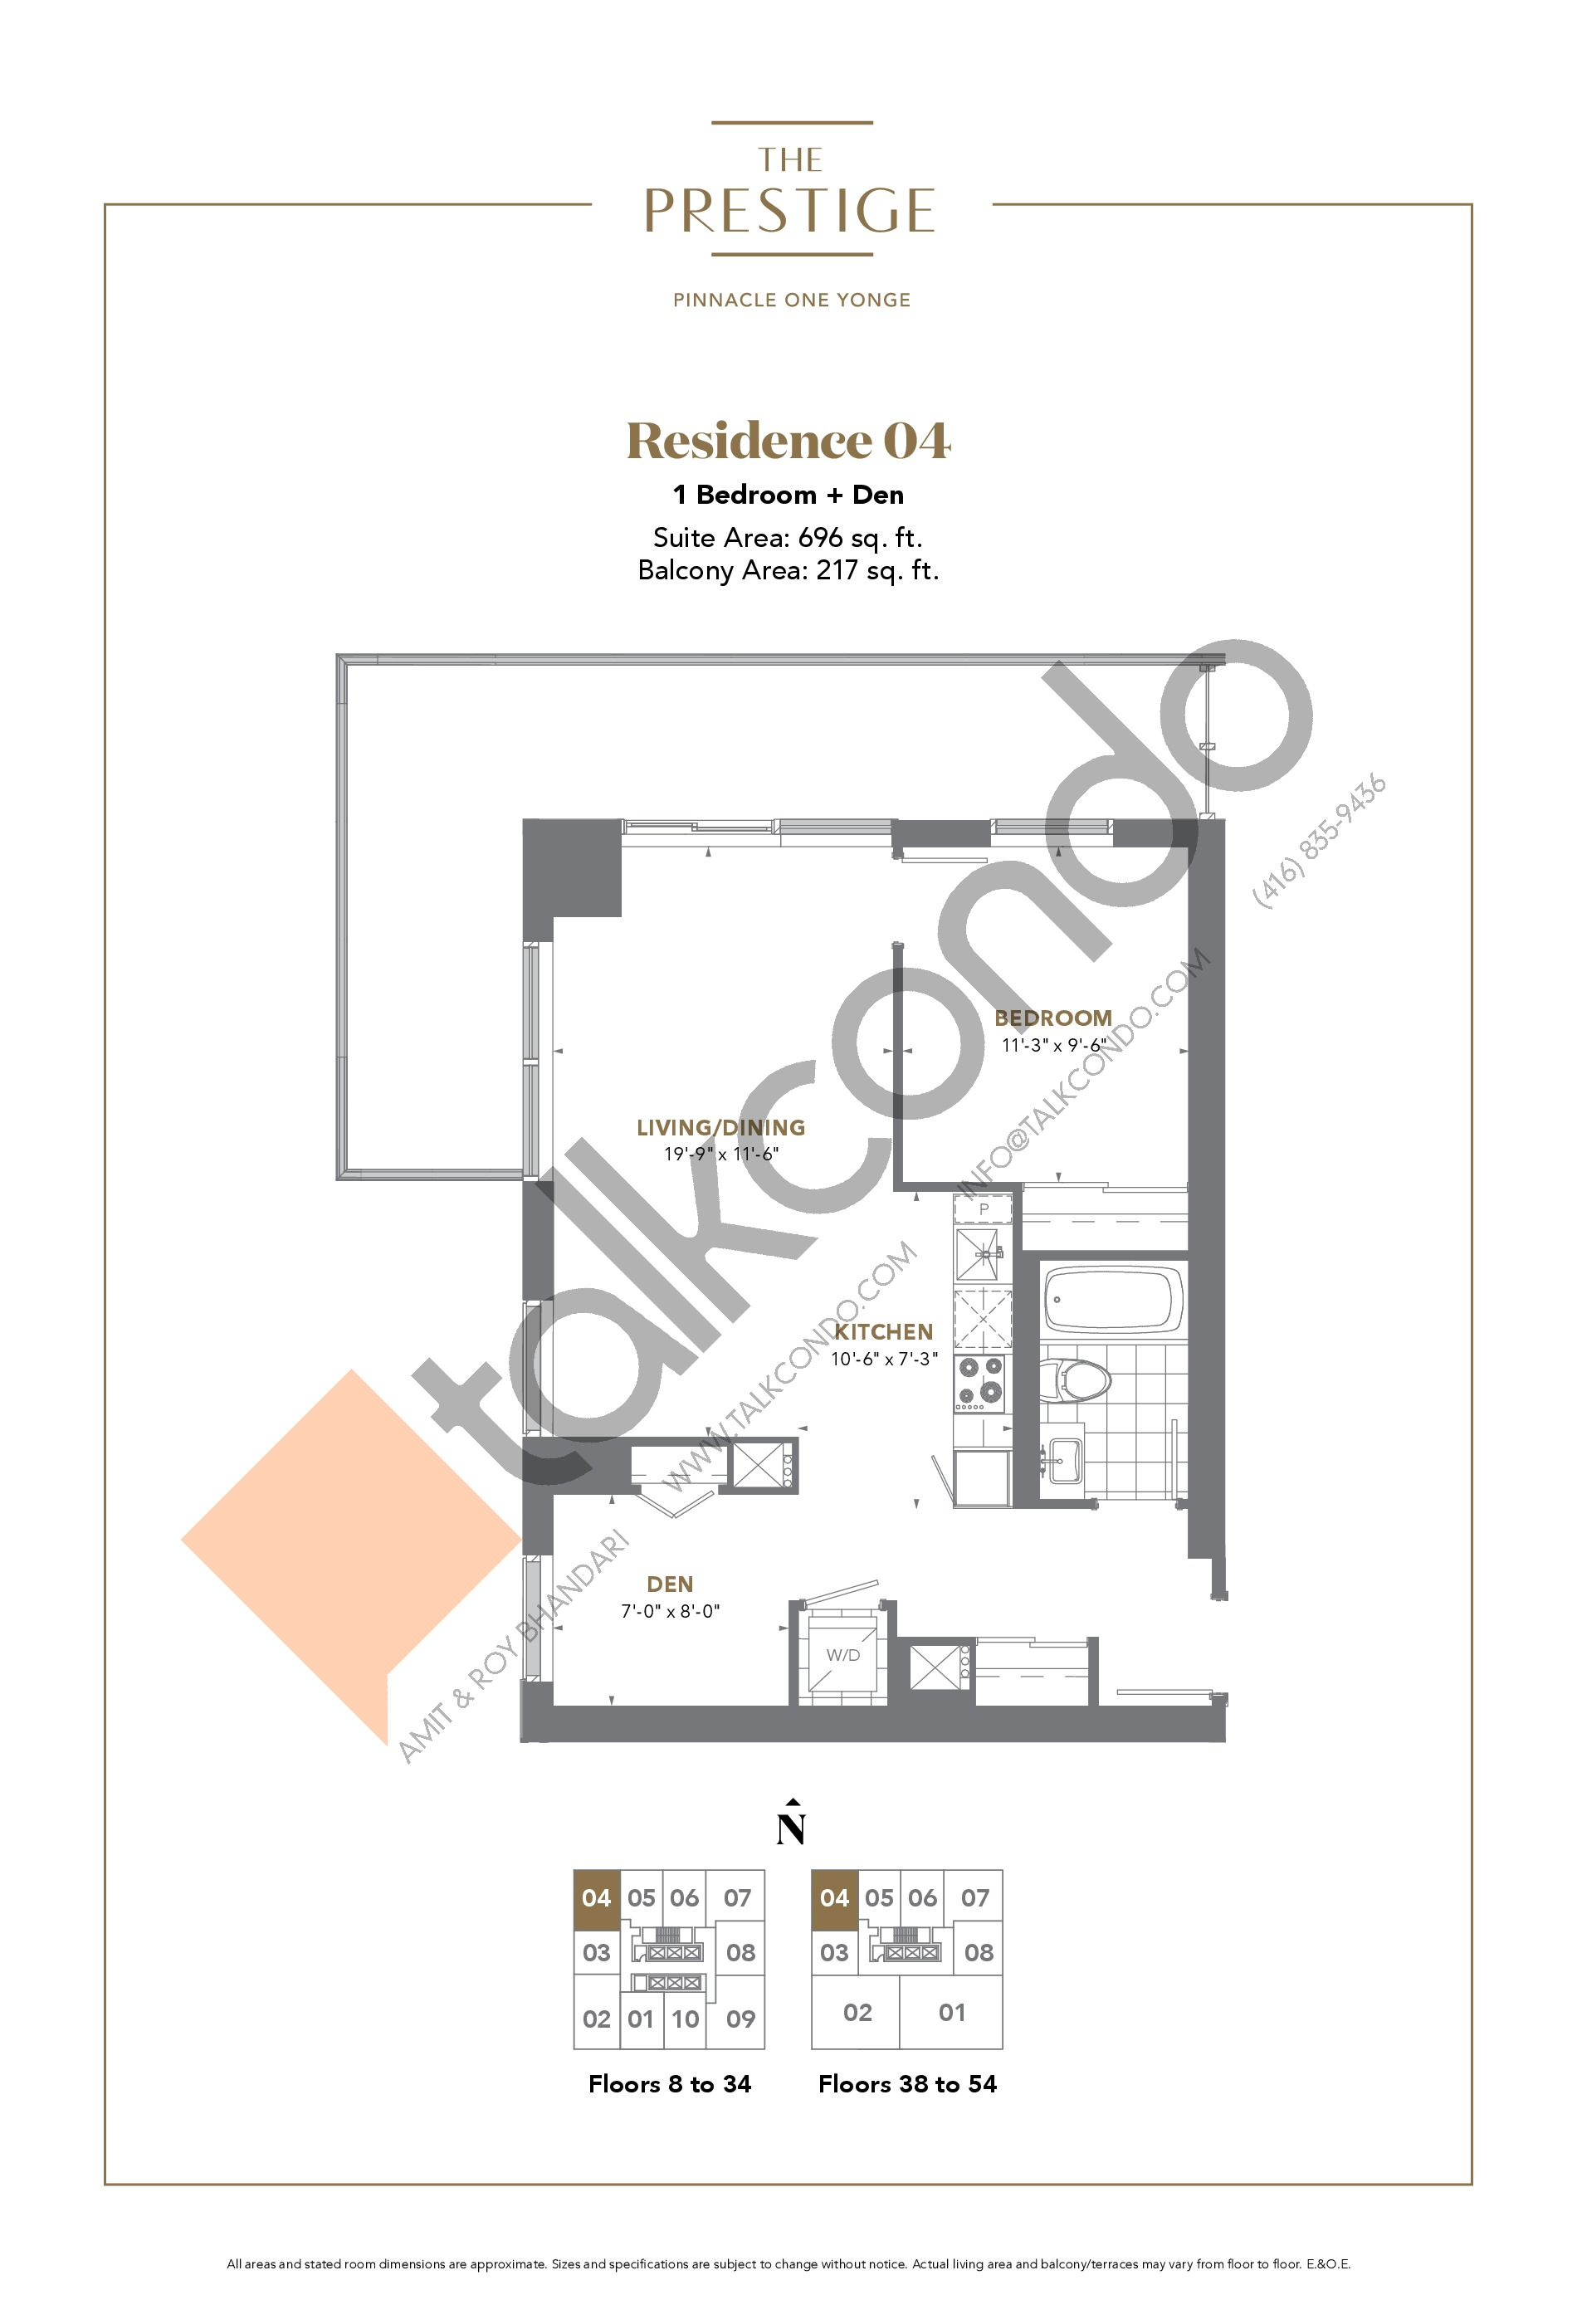 Residence 04 Floor Plan at The Prestige Condos at Pinnacle One Yonge - 696 sq.ft